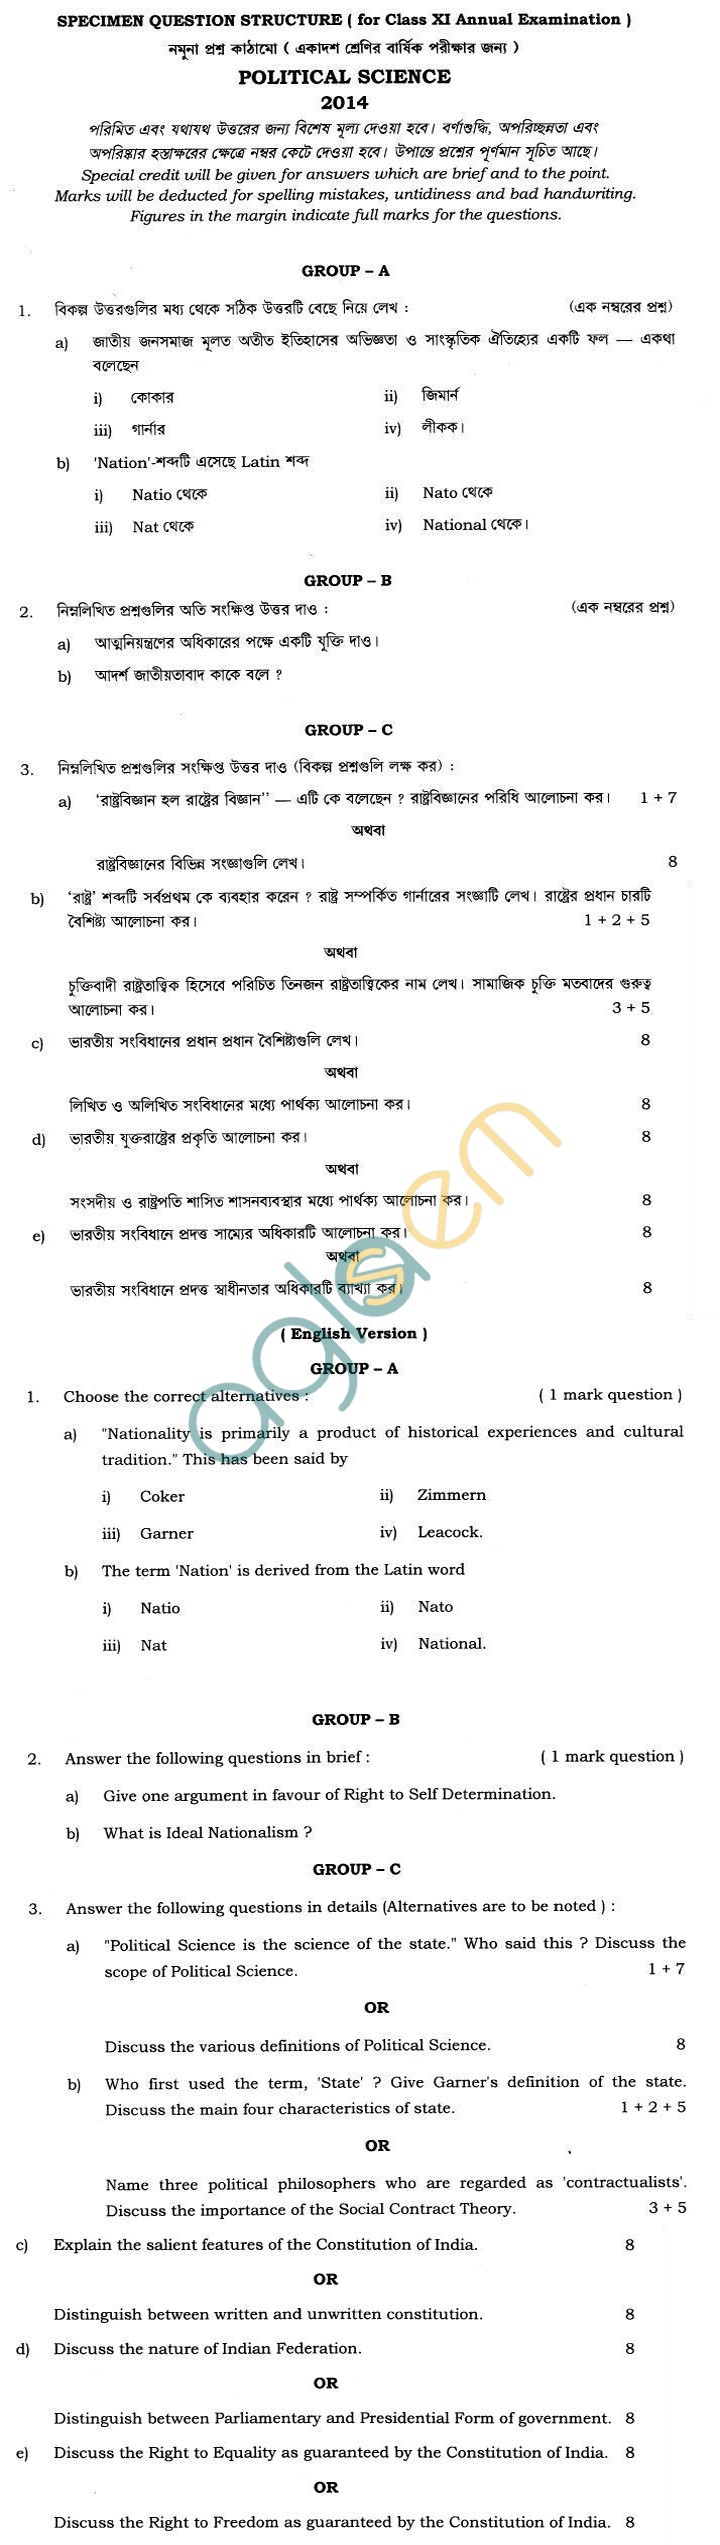 how to write a political science essay west bengal board sample question paper for class political science west bengal board sample question paper for class political science